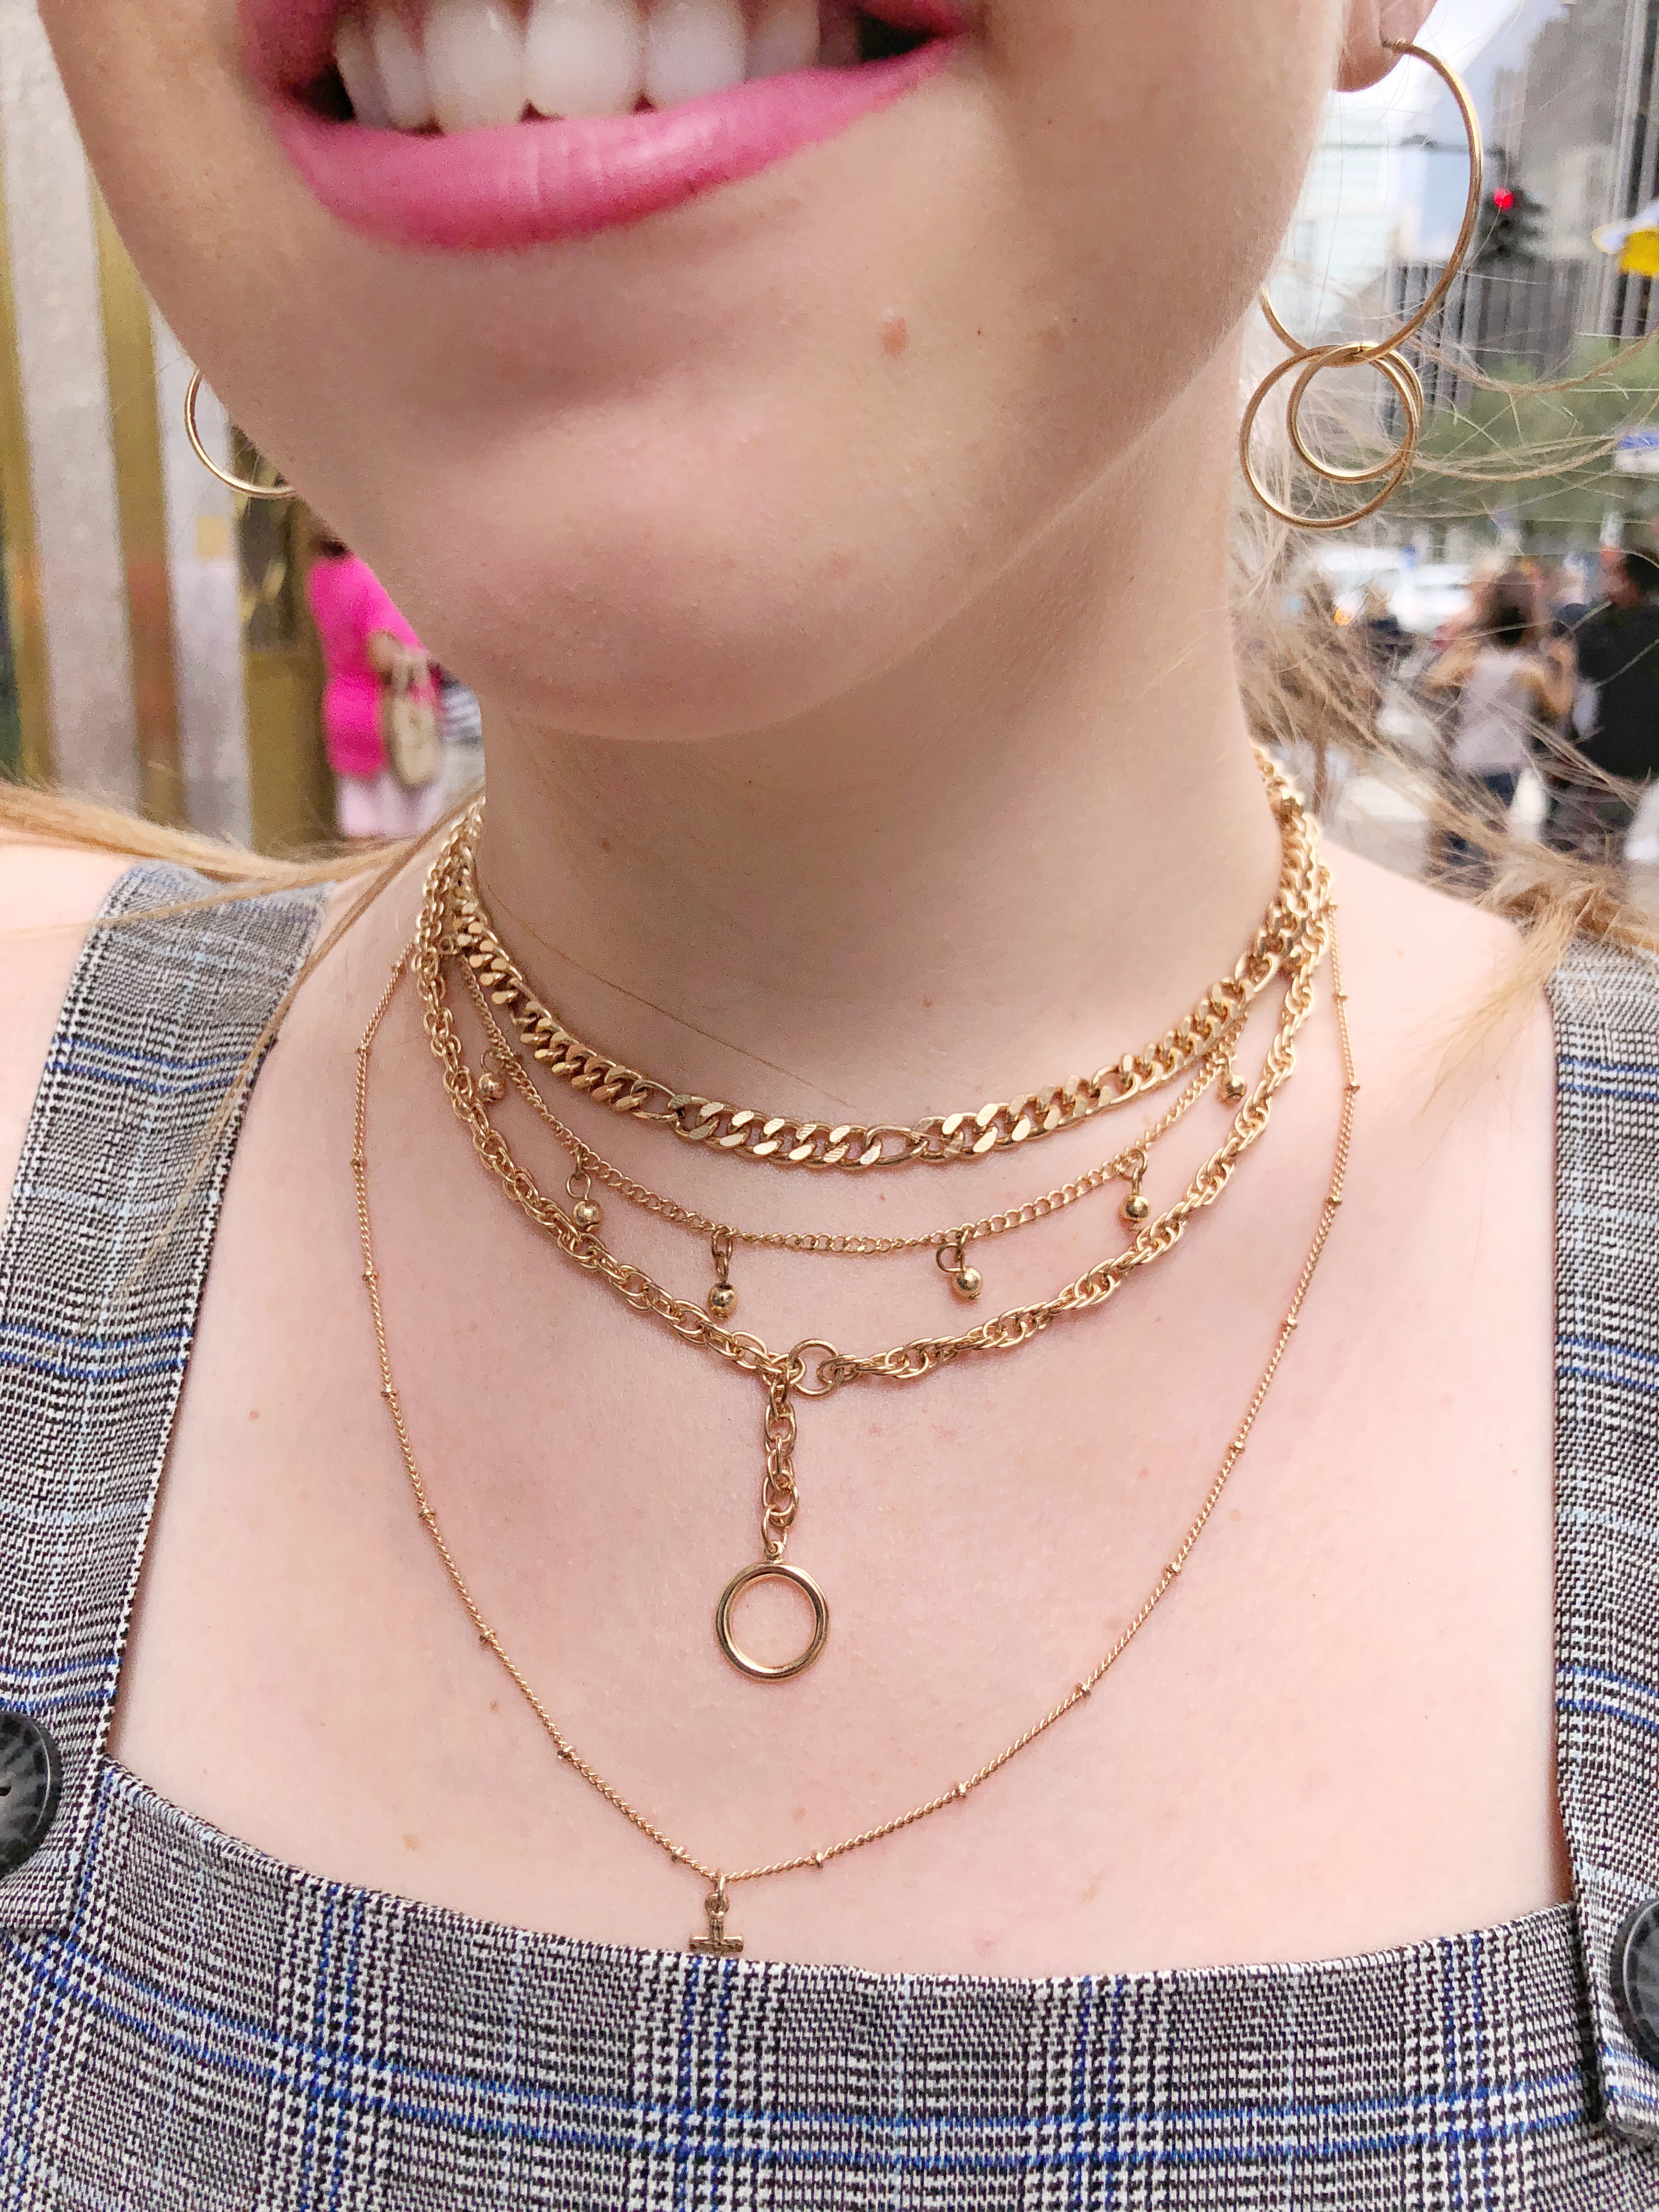 Layered Necklace NYC City Chic